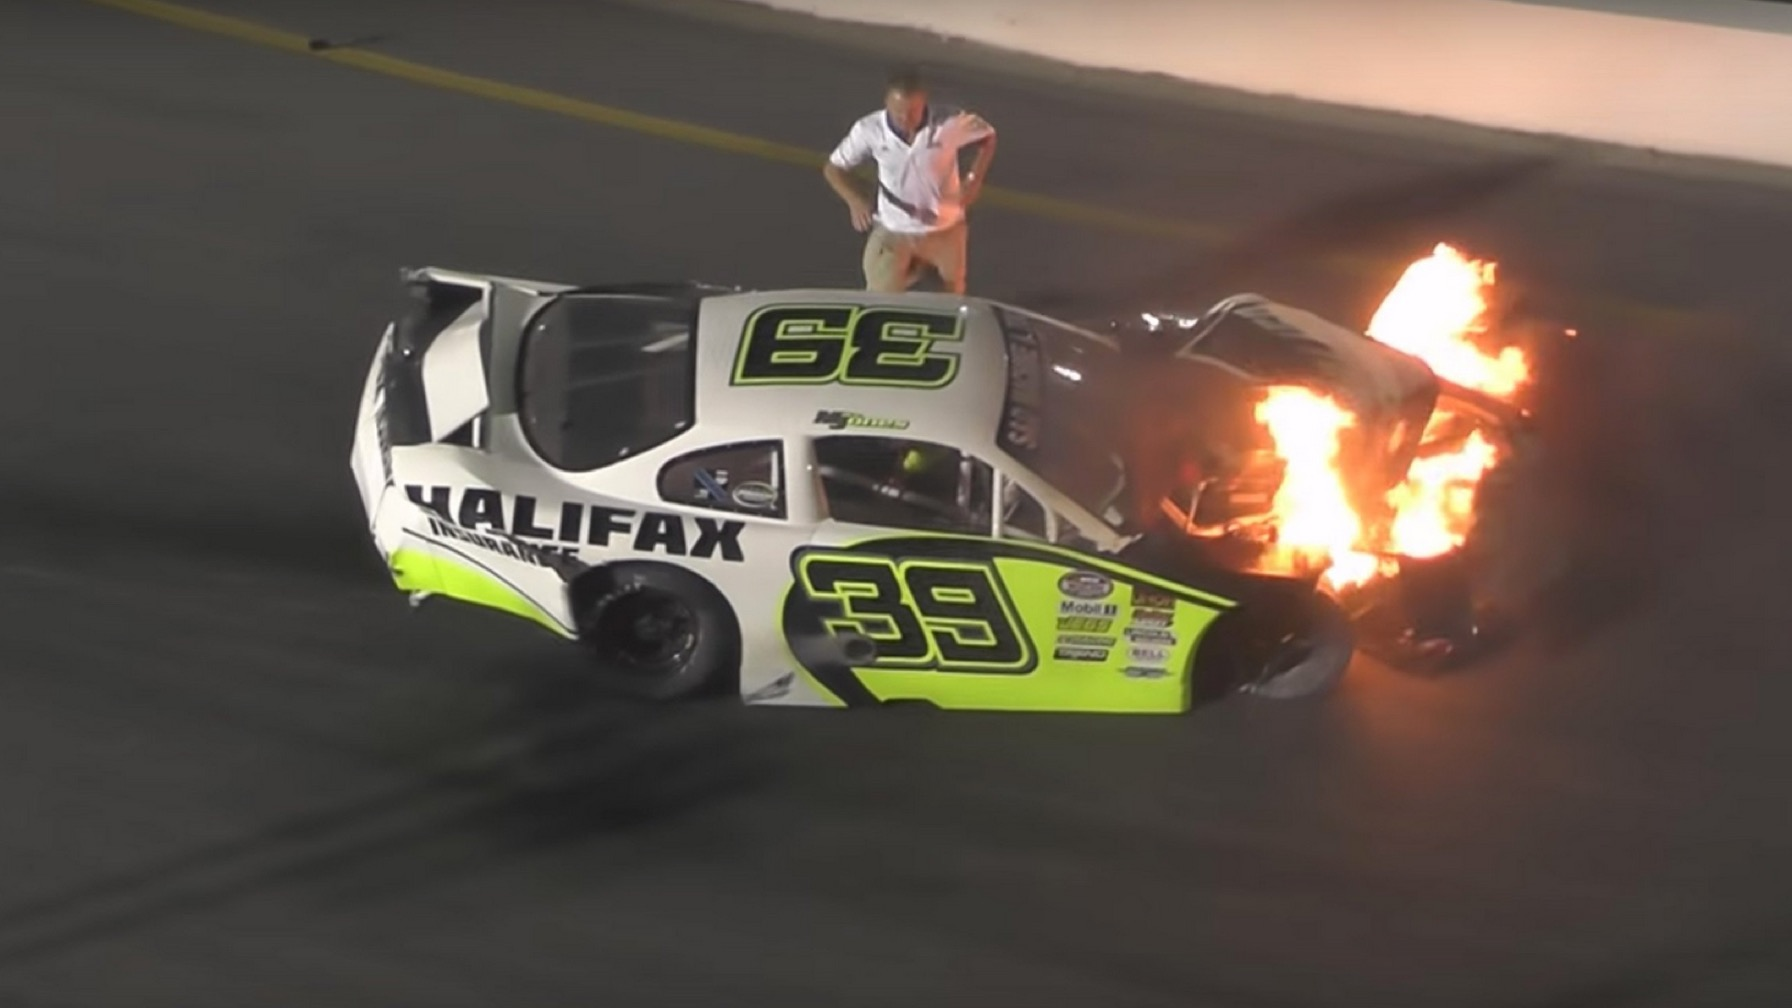 Dad Rushes Onto Track To Free His Son From A Burning Racecar